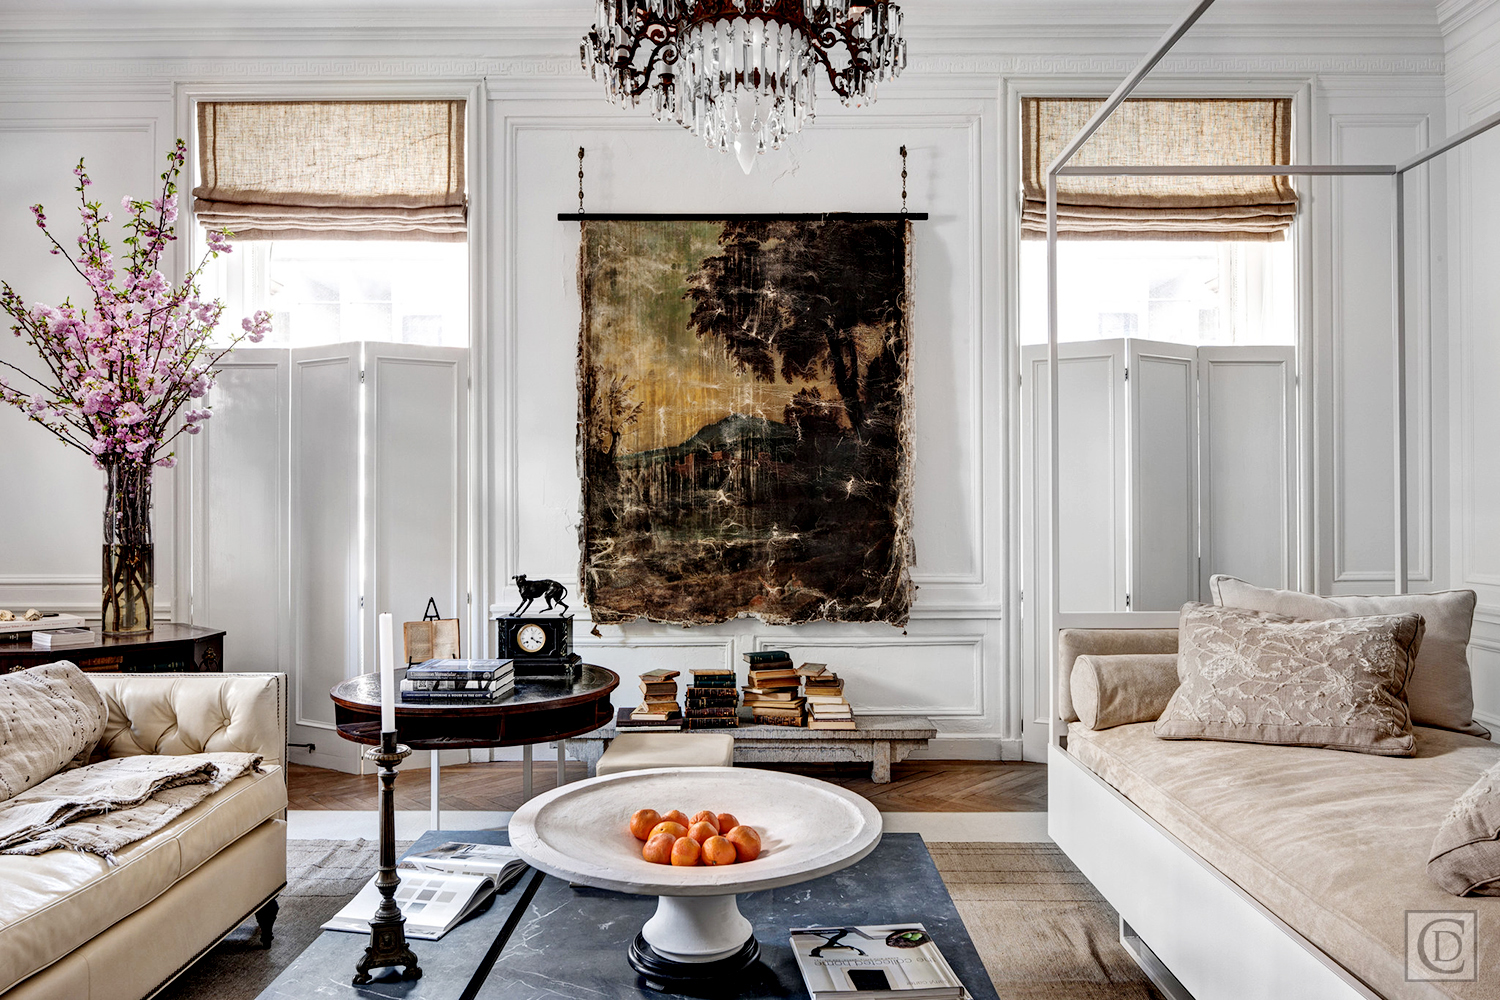 20 Top Interior Design Firms In Washington You'll Love_3 top interior design firms in washington Top Interior Design Firms in Washington 20 Top Interior Design Firms In Washington Youll Love 3